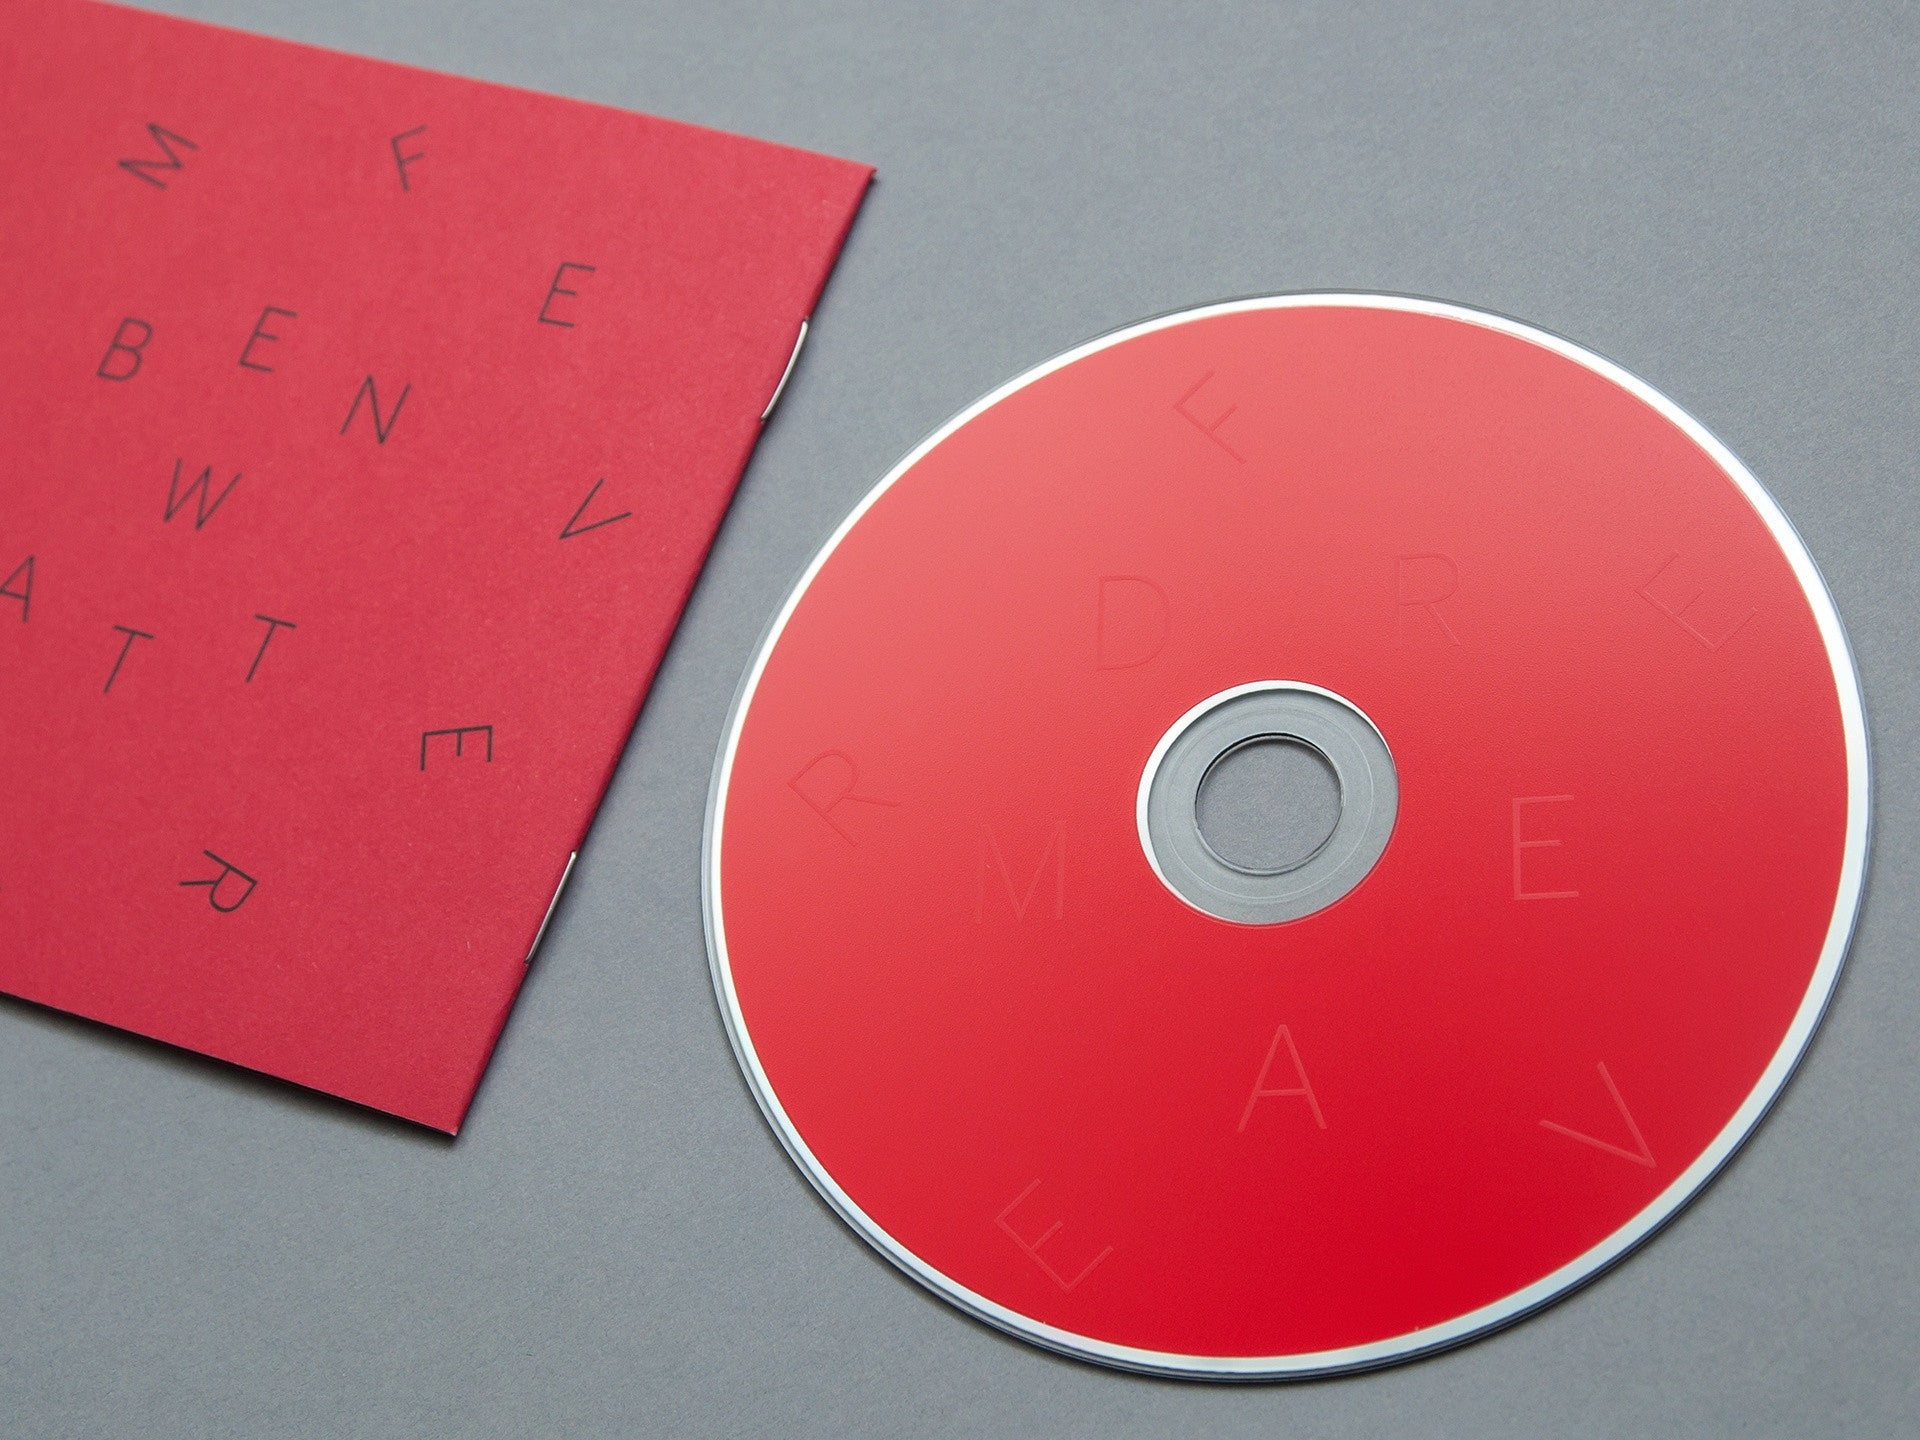 Ben Watt - Fever Dream (CD)